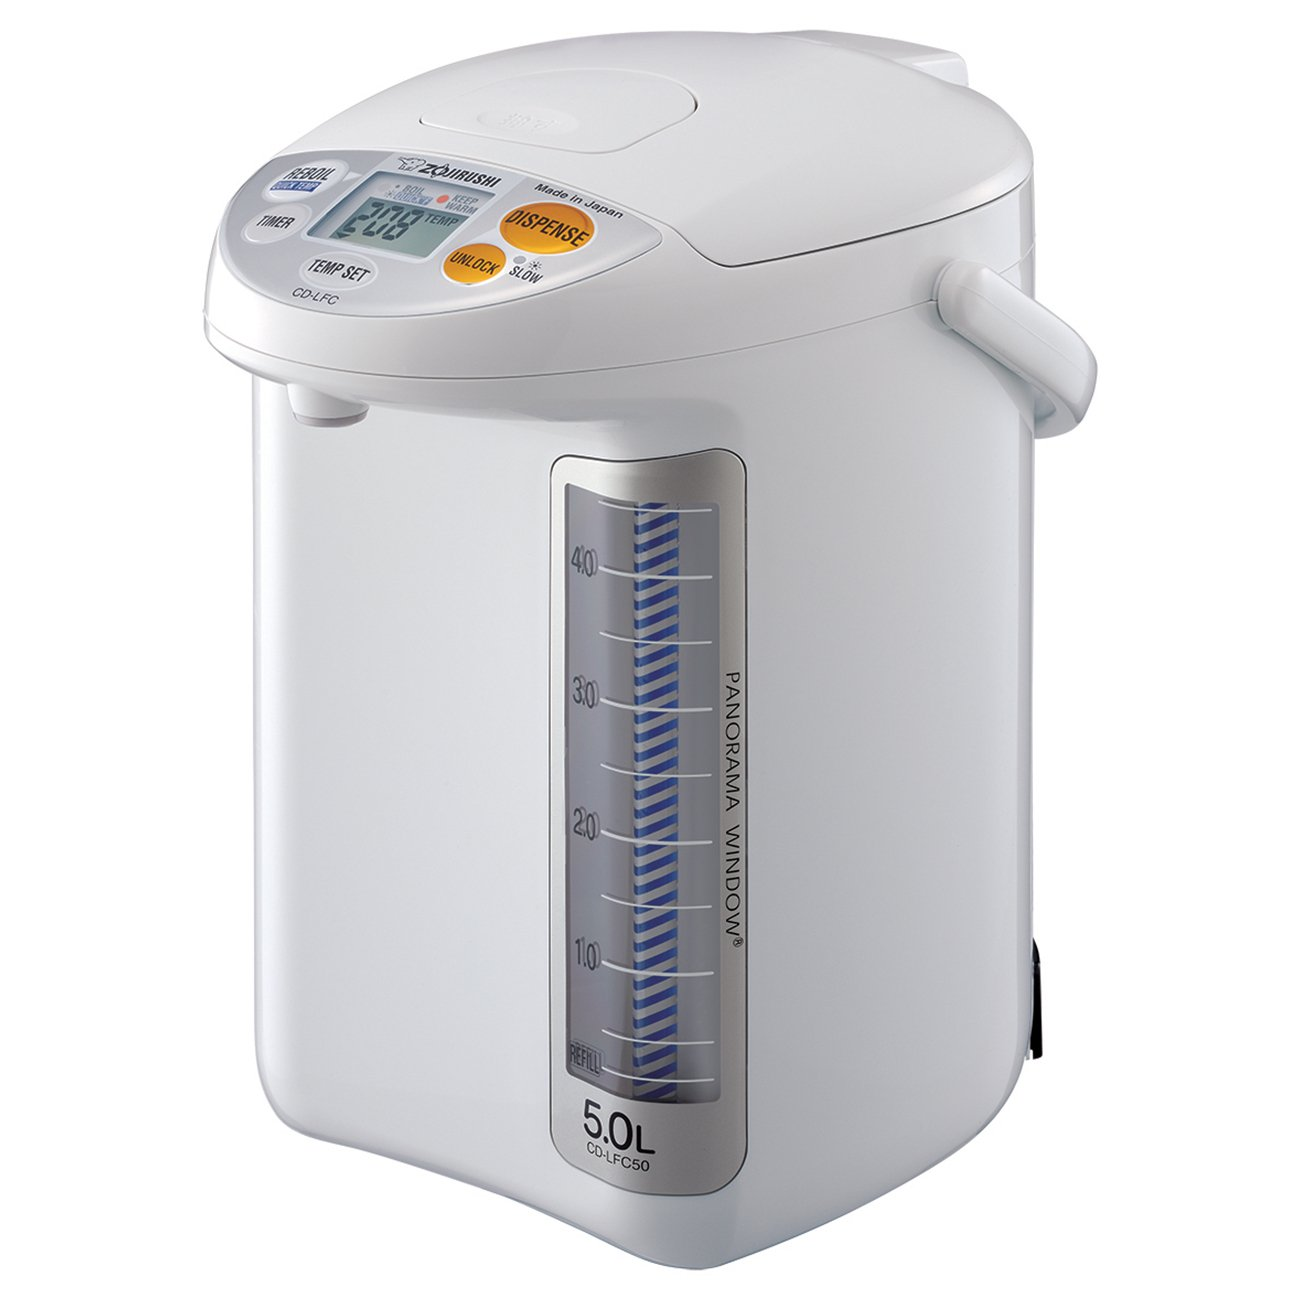 Zojirushi CD-LFC50 Panorama Window Micom Water Boiler and Warmer, 169 oz/5.0 L, White